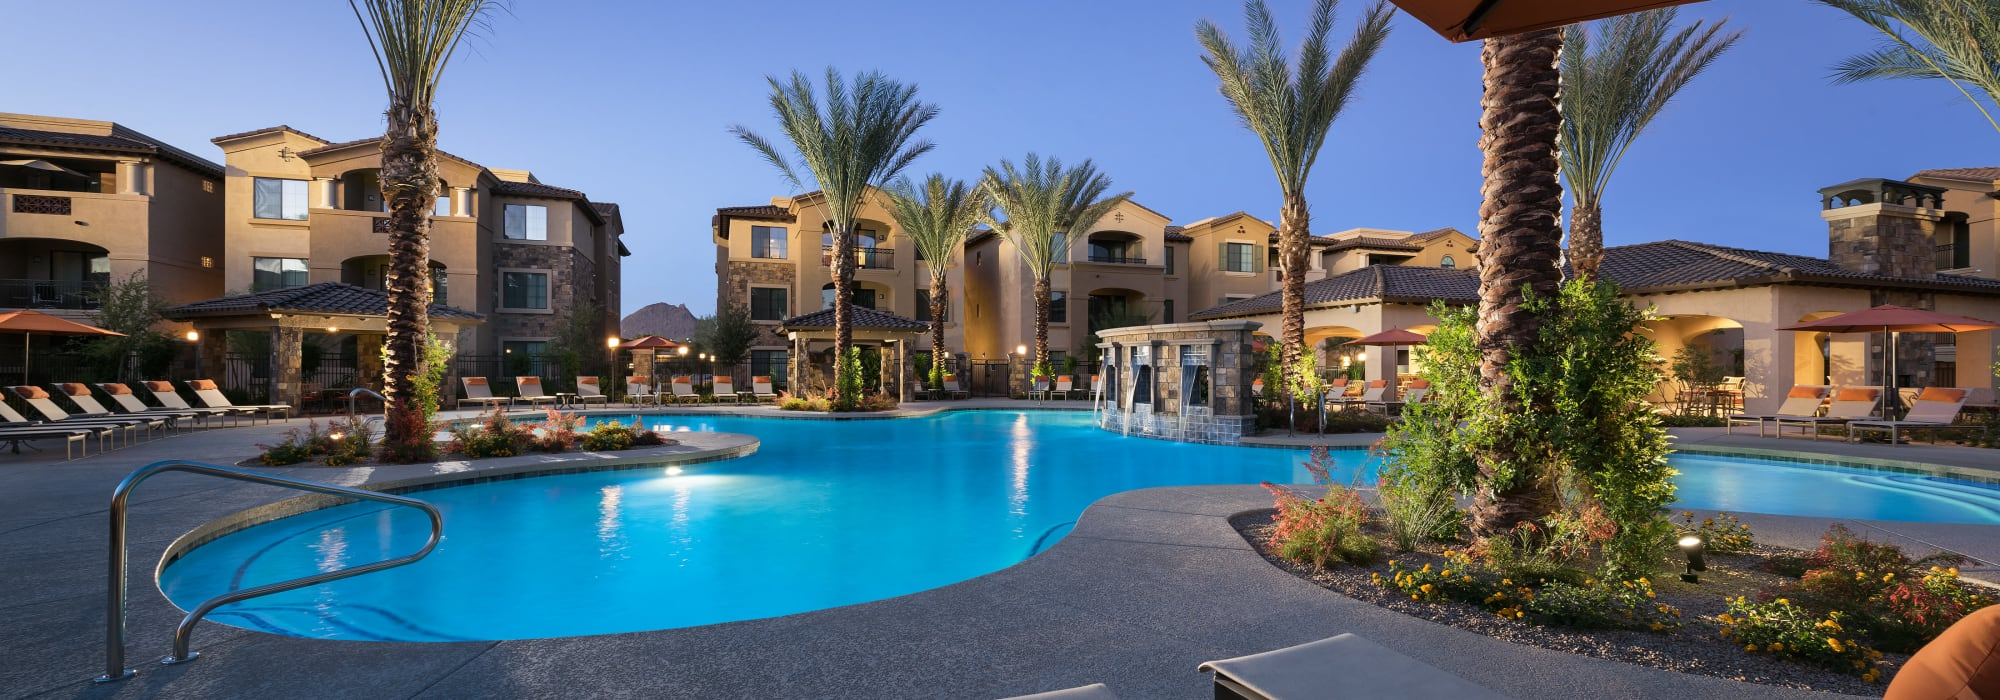 Resort-style swimming pool during the night at San Portales in Scottsdale, Arizona